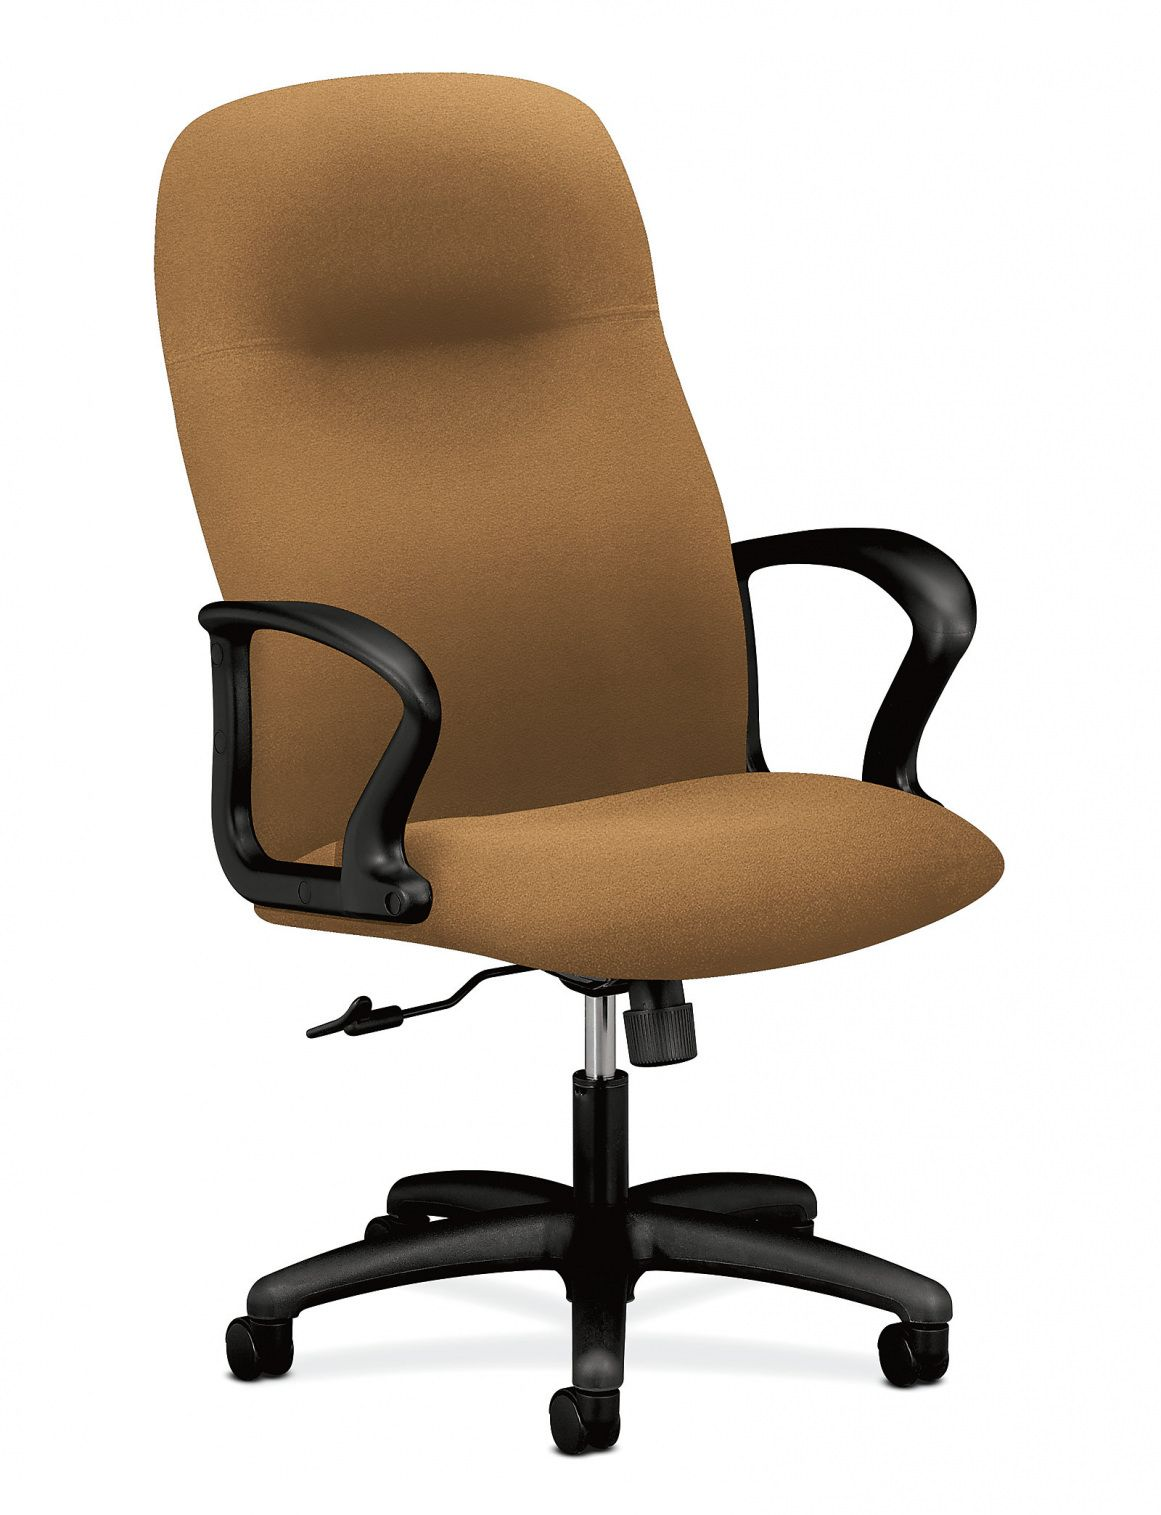 expensive office furniture. Office Chairs Under $50 - Expensive Home Furniture Check More At Http://